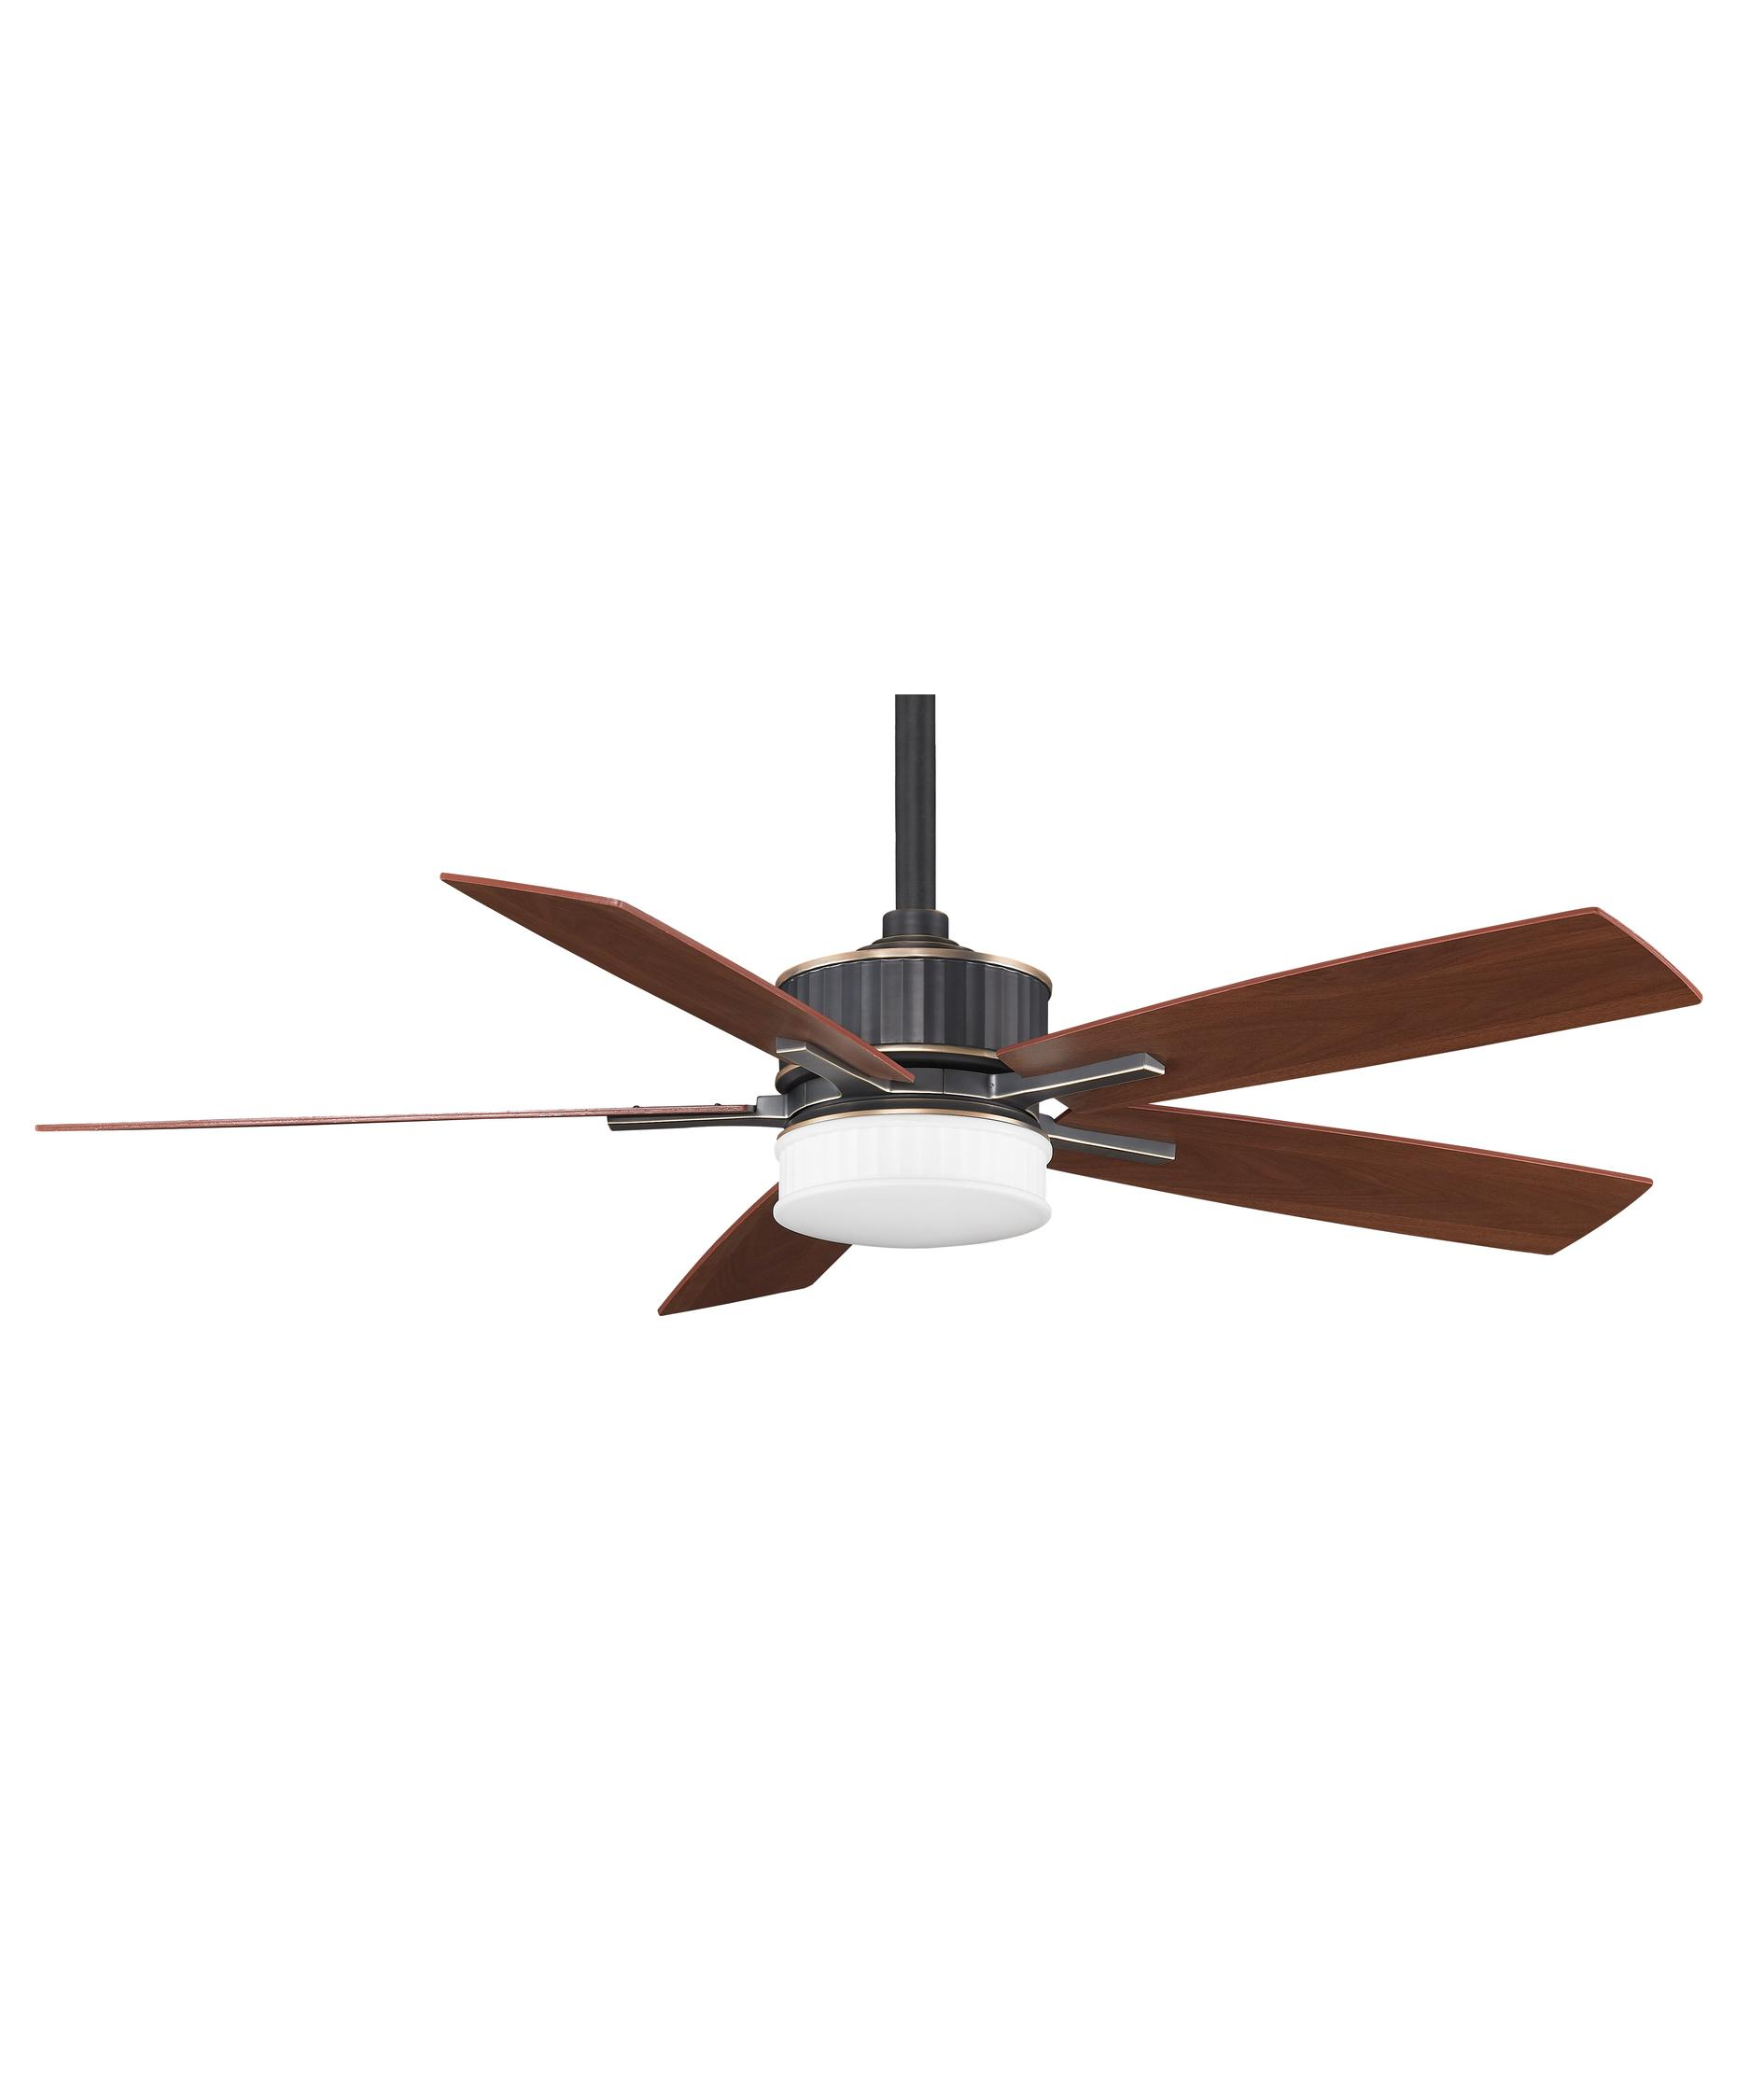 Ceiling Fan 60: Shown in Bronze Accent finish,Lighting